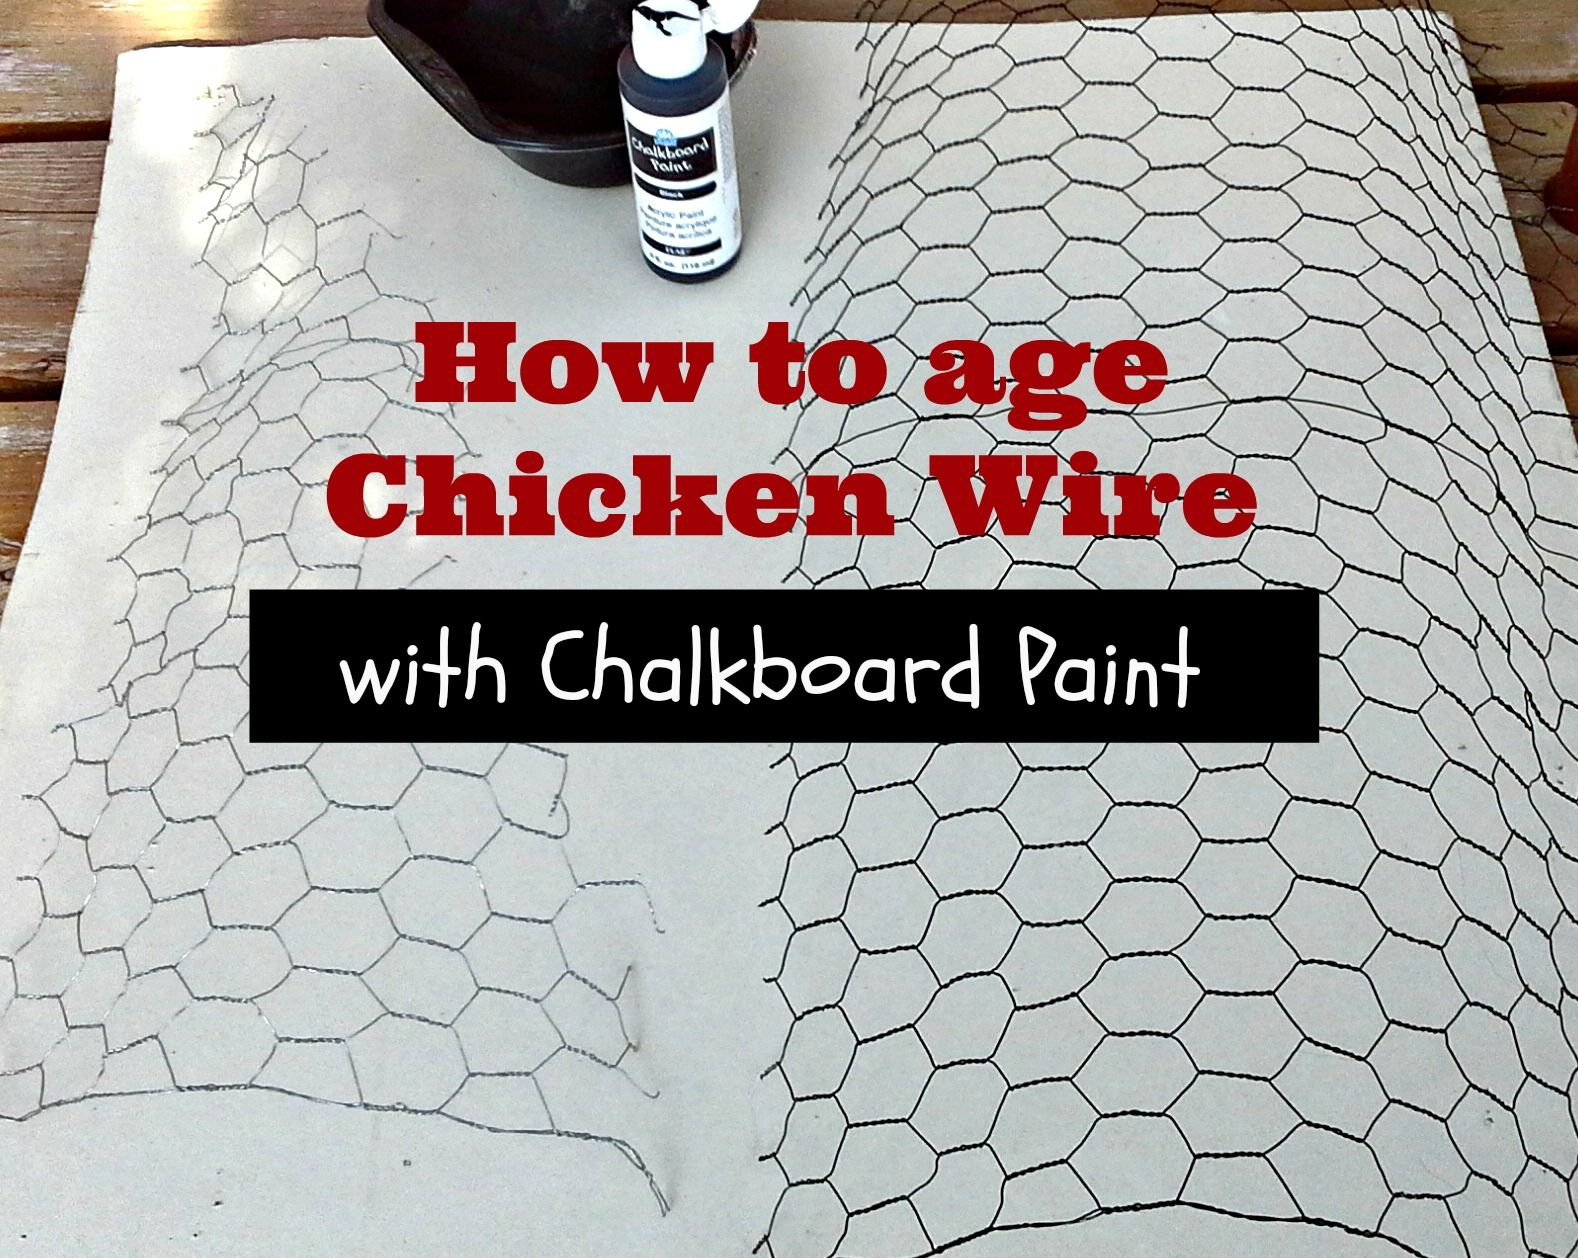 How to Age Chicken Wire with Chalkboard Paint | Maschendraht, Draht ...